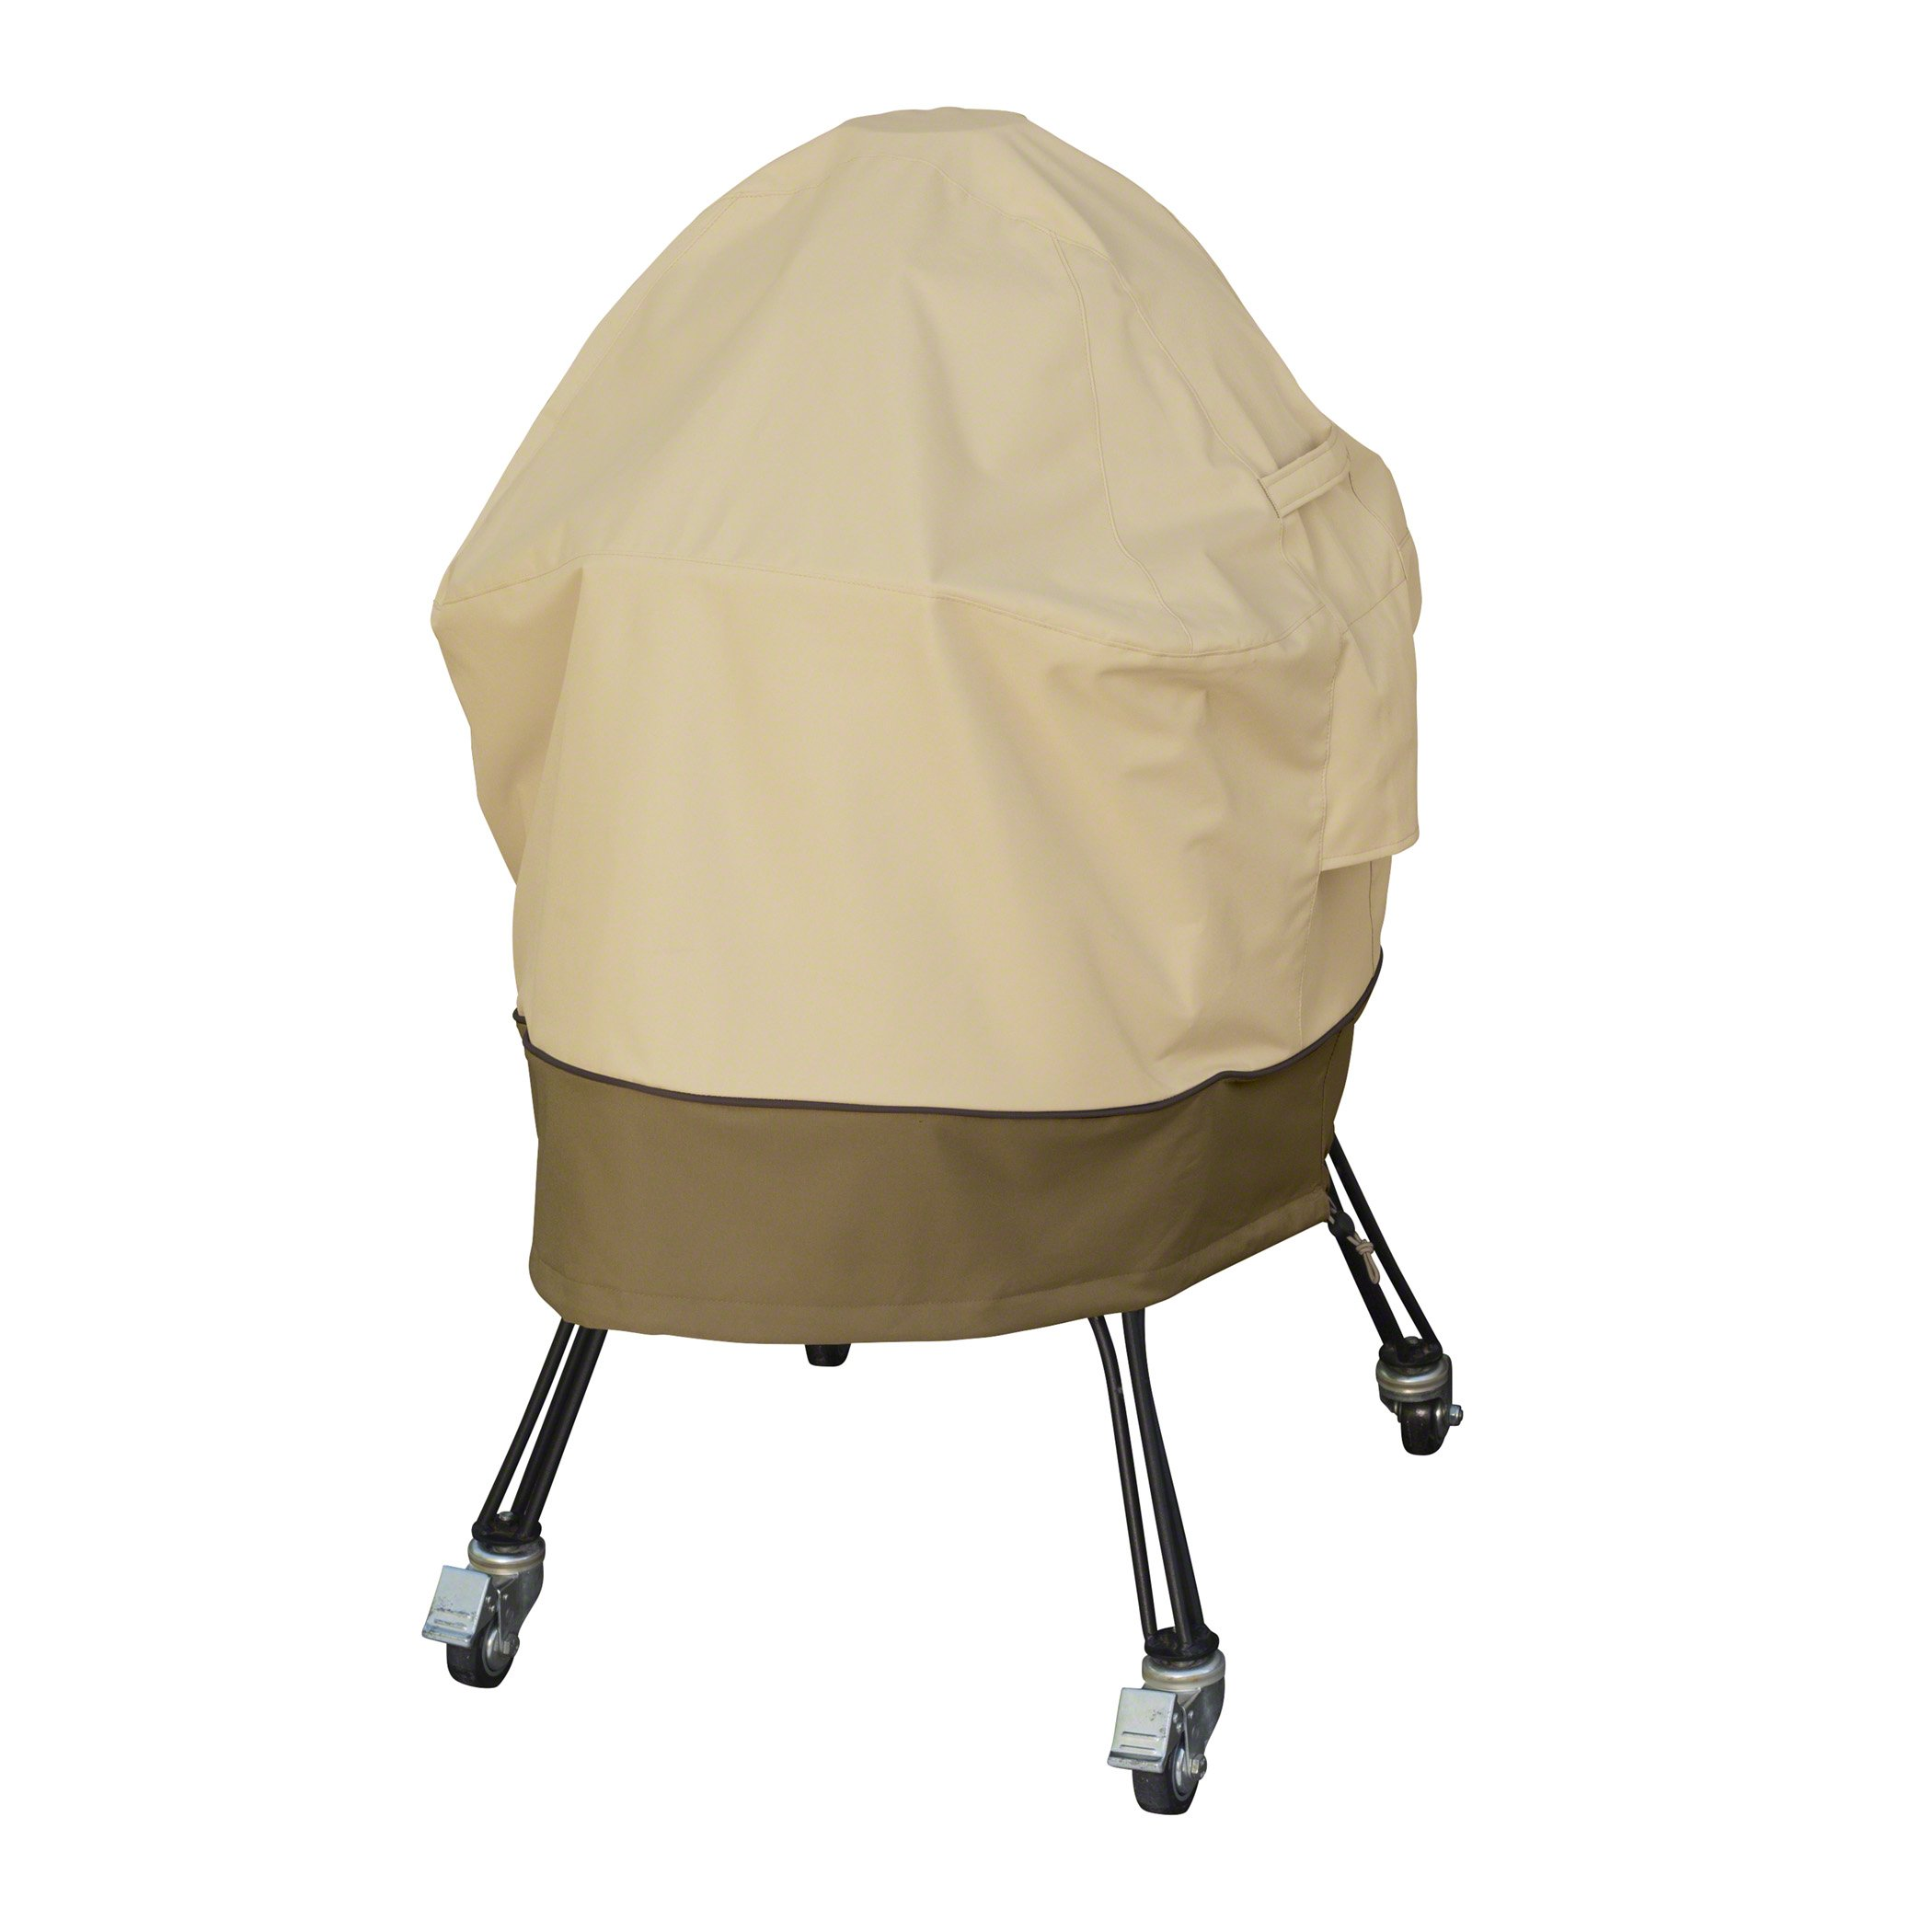 Classic Accessories Veranda Big Green Egg Grill Cover, X-Large by Classic Accessories